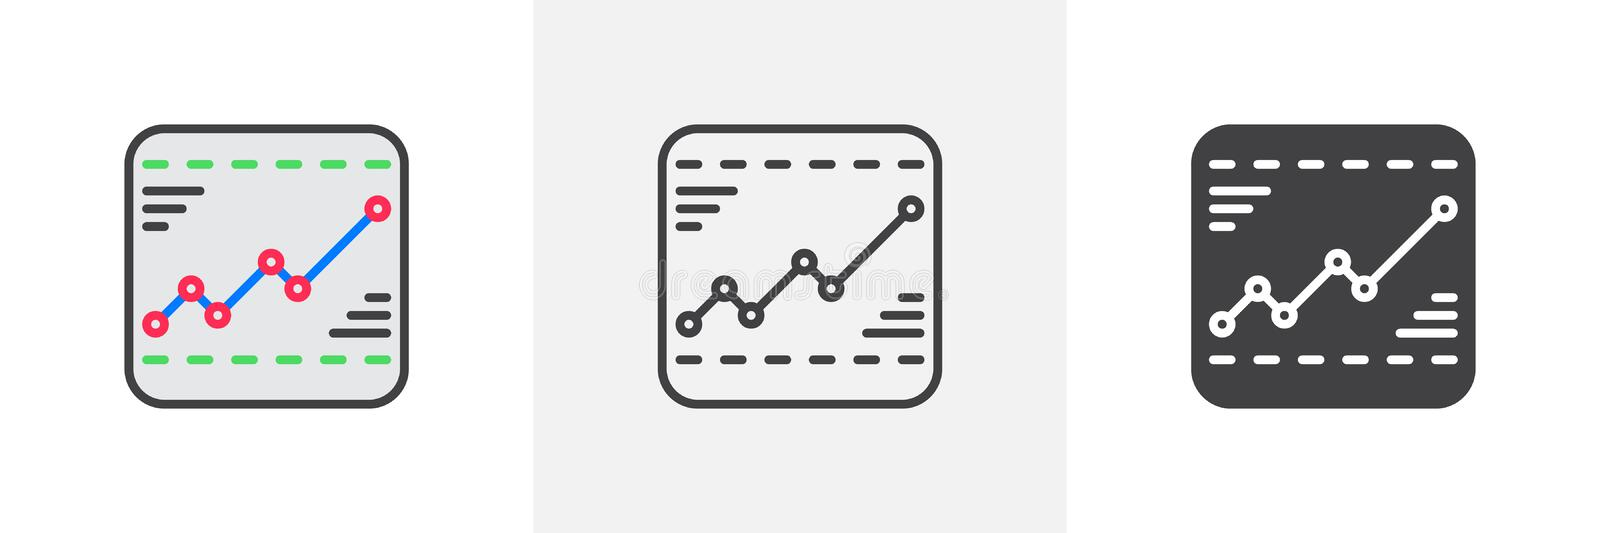 Line chart icon royalty free illustration